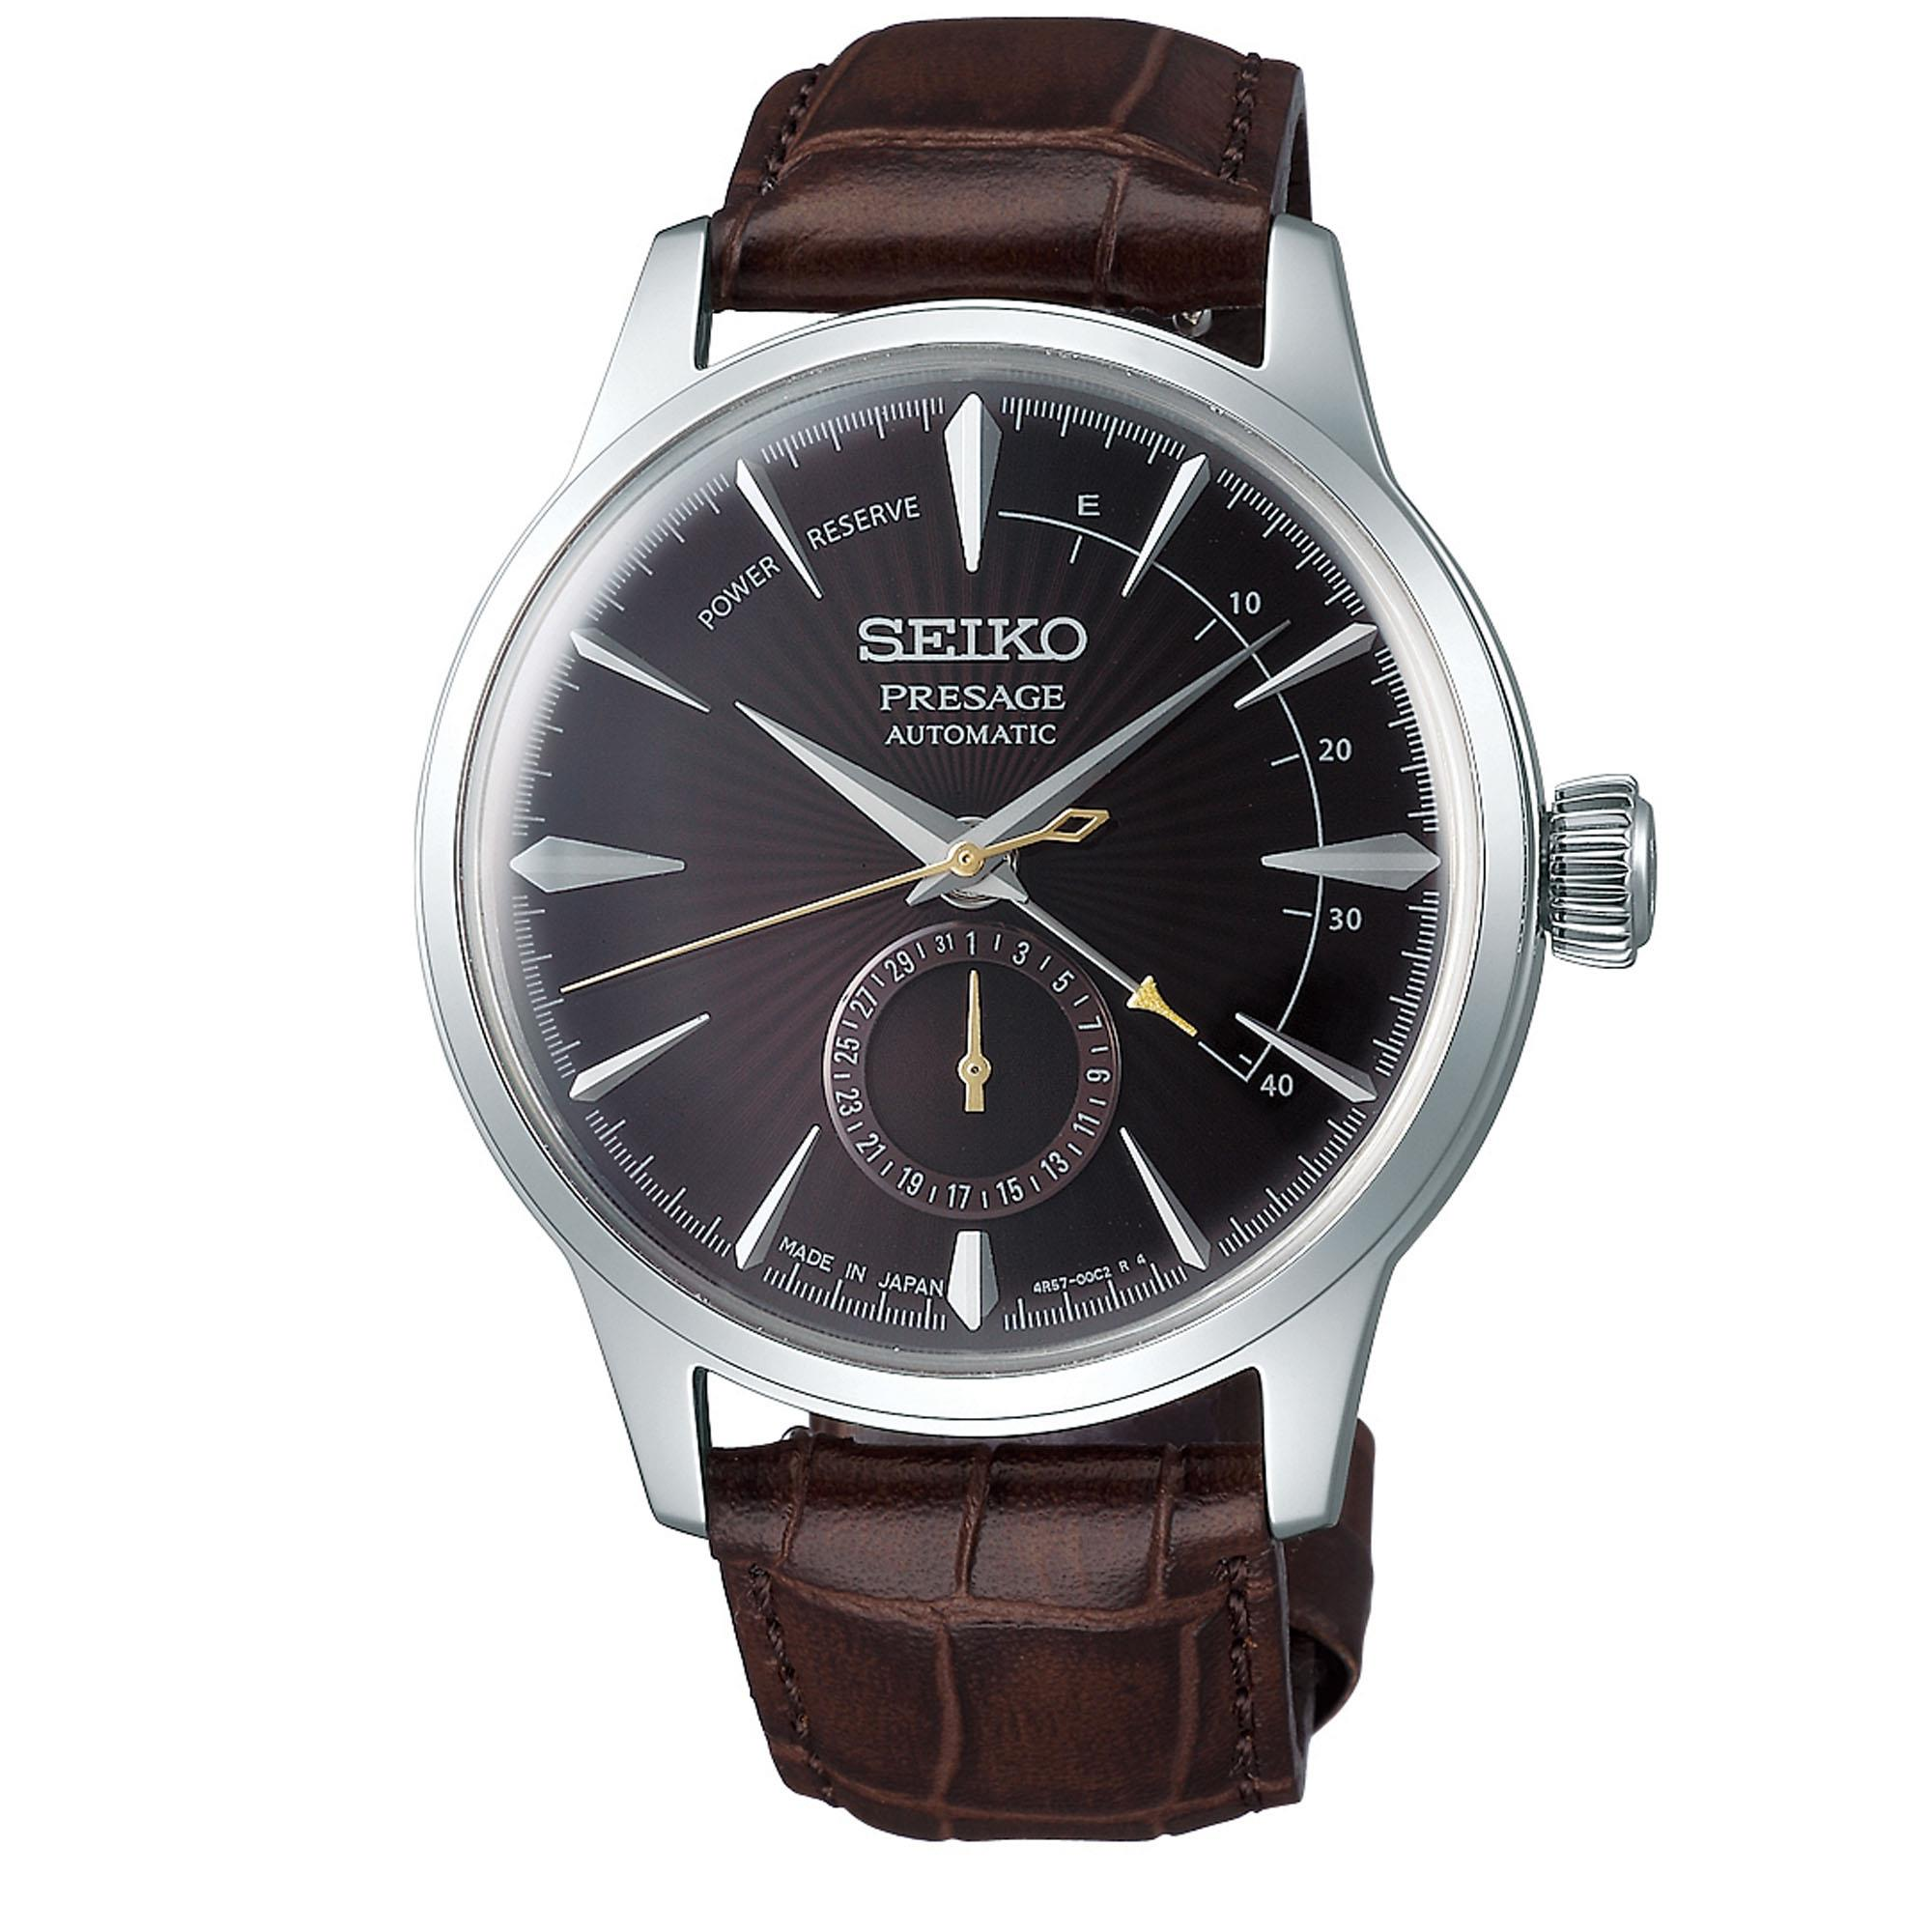 Seiko Presage Black Cat Martini Automatic Brown Leather Silver Steel Men's Watch SSA393J1This Seiko Presage Black Cat Martini Automatic Brown Leather Silver Steel Men's Watch SSA393J1 brings out the character of cocktails. Deep, rich tones, such as the fascinating purple of a Black Cat Martini sparkling and to under soft light, are the key to ths sophistacted taste. A cocktail brown dial is compimented by a silver stainless steel indexes and hands which in turn are powered by an automatic 29 jewel 4R57 movement. Above the 6 o'clock index is a subdial which shows the date with a power reserve indicator at the top right of the dial. Surrounding the dial is hardlex crystal glass and a beautiful gold PVD stainless steel case. Finally, a stitched brown leather strap can be fastened using a three fold clasp.This watch has a water resistance of 50 metres, making it suitable for surface swimming.For all you Seikoenthusiasts, this premium timepiece has been made and produced in Japan, indicated by the suffix 'J'. Seiko watches made in Japan are notoriously hard to obtain outside of Japan due to the highest quality of craftmanship and astonishing features that come in each individual timepiece. We have a range of Japanese watches here at Watchnation but in limited quantities, so if you are looking to add to your collection then this is the perfect place for you.Key Features:29 JewelsPresage FamilyBlack Cat Martini InspiredBrown DialSilver Stainless Steel CaseBrown Leather StrapDate SubdialAutomatic Movement50m Water ResistantHardlex Crystal Glass+-45 Seconds Per DayThree Fold Clasp23 JewelsPower Reserve41 Hour Power Reserve4R57 CaliberThe Brand: SeikoSeiko's 135-year history has been marked by a ceaseless determination to innovate in every aspect of the watchmaker's art. By embracing this mantra, Seiko has been responsible for a string of industry-leading advances in the technology of time, such as the world's first quartz watch, the world's first TV watch, and the Seiko Kine